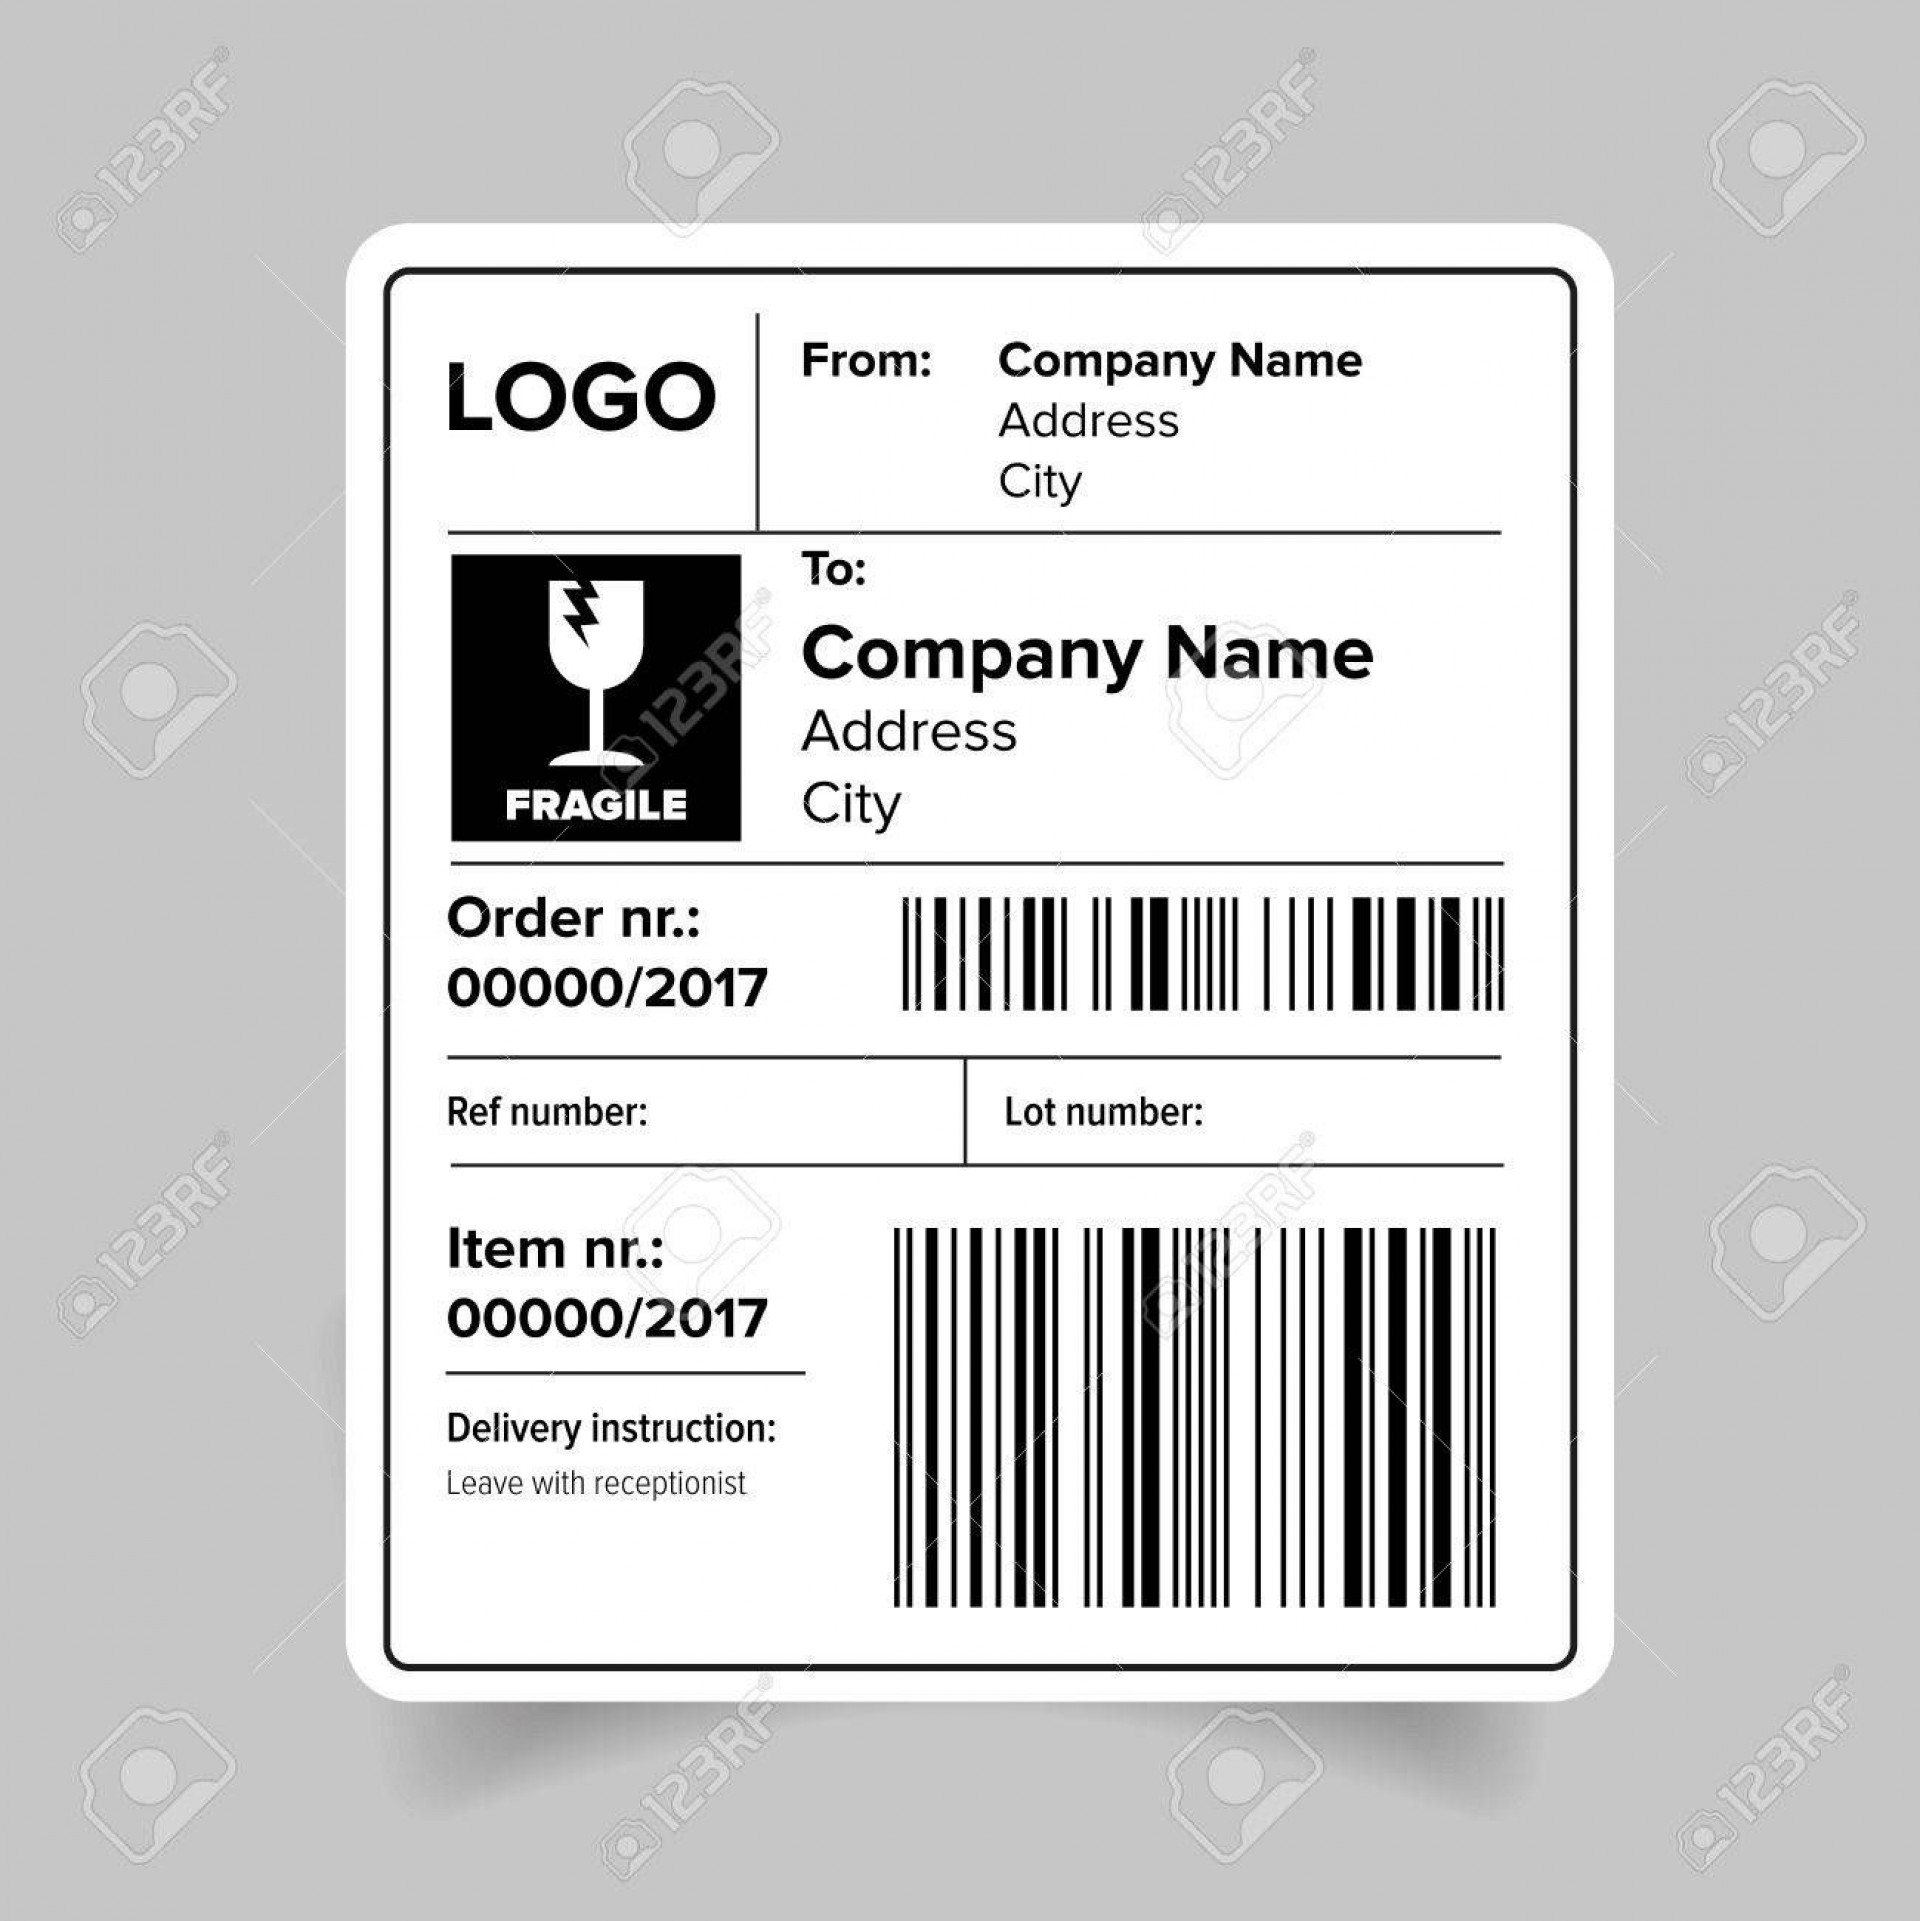 003 Imposing Free Shipping Label Template Photo  Format Word For Mac1920